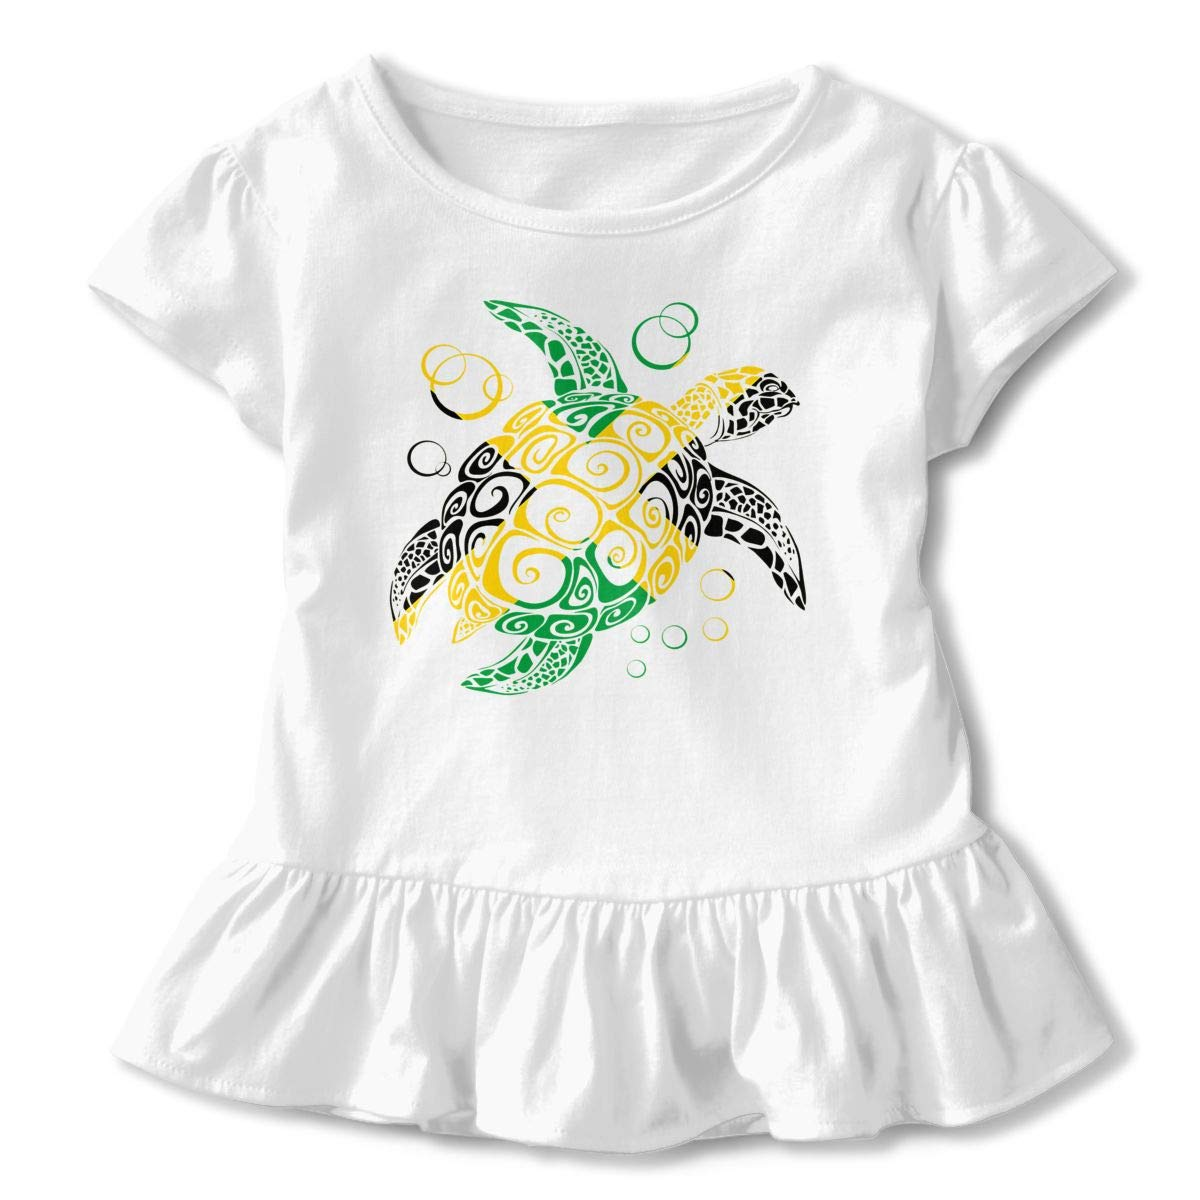 Flag of Jamaica Sea Turtle Toddler Baby Girls Cotton Ruffle Short Sleeve Top Cute T-Shirt 2-6T